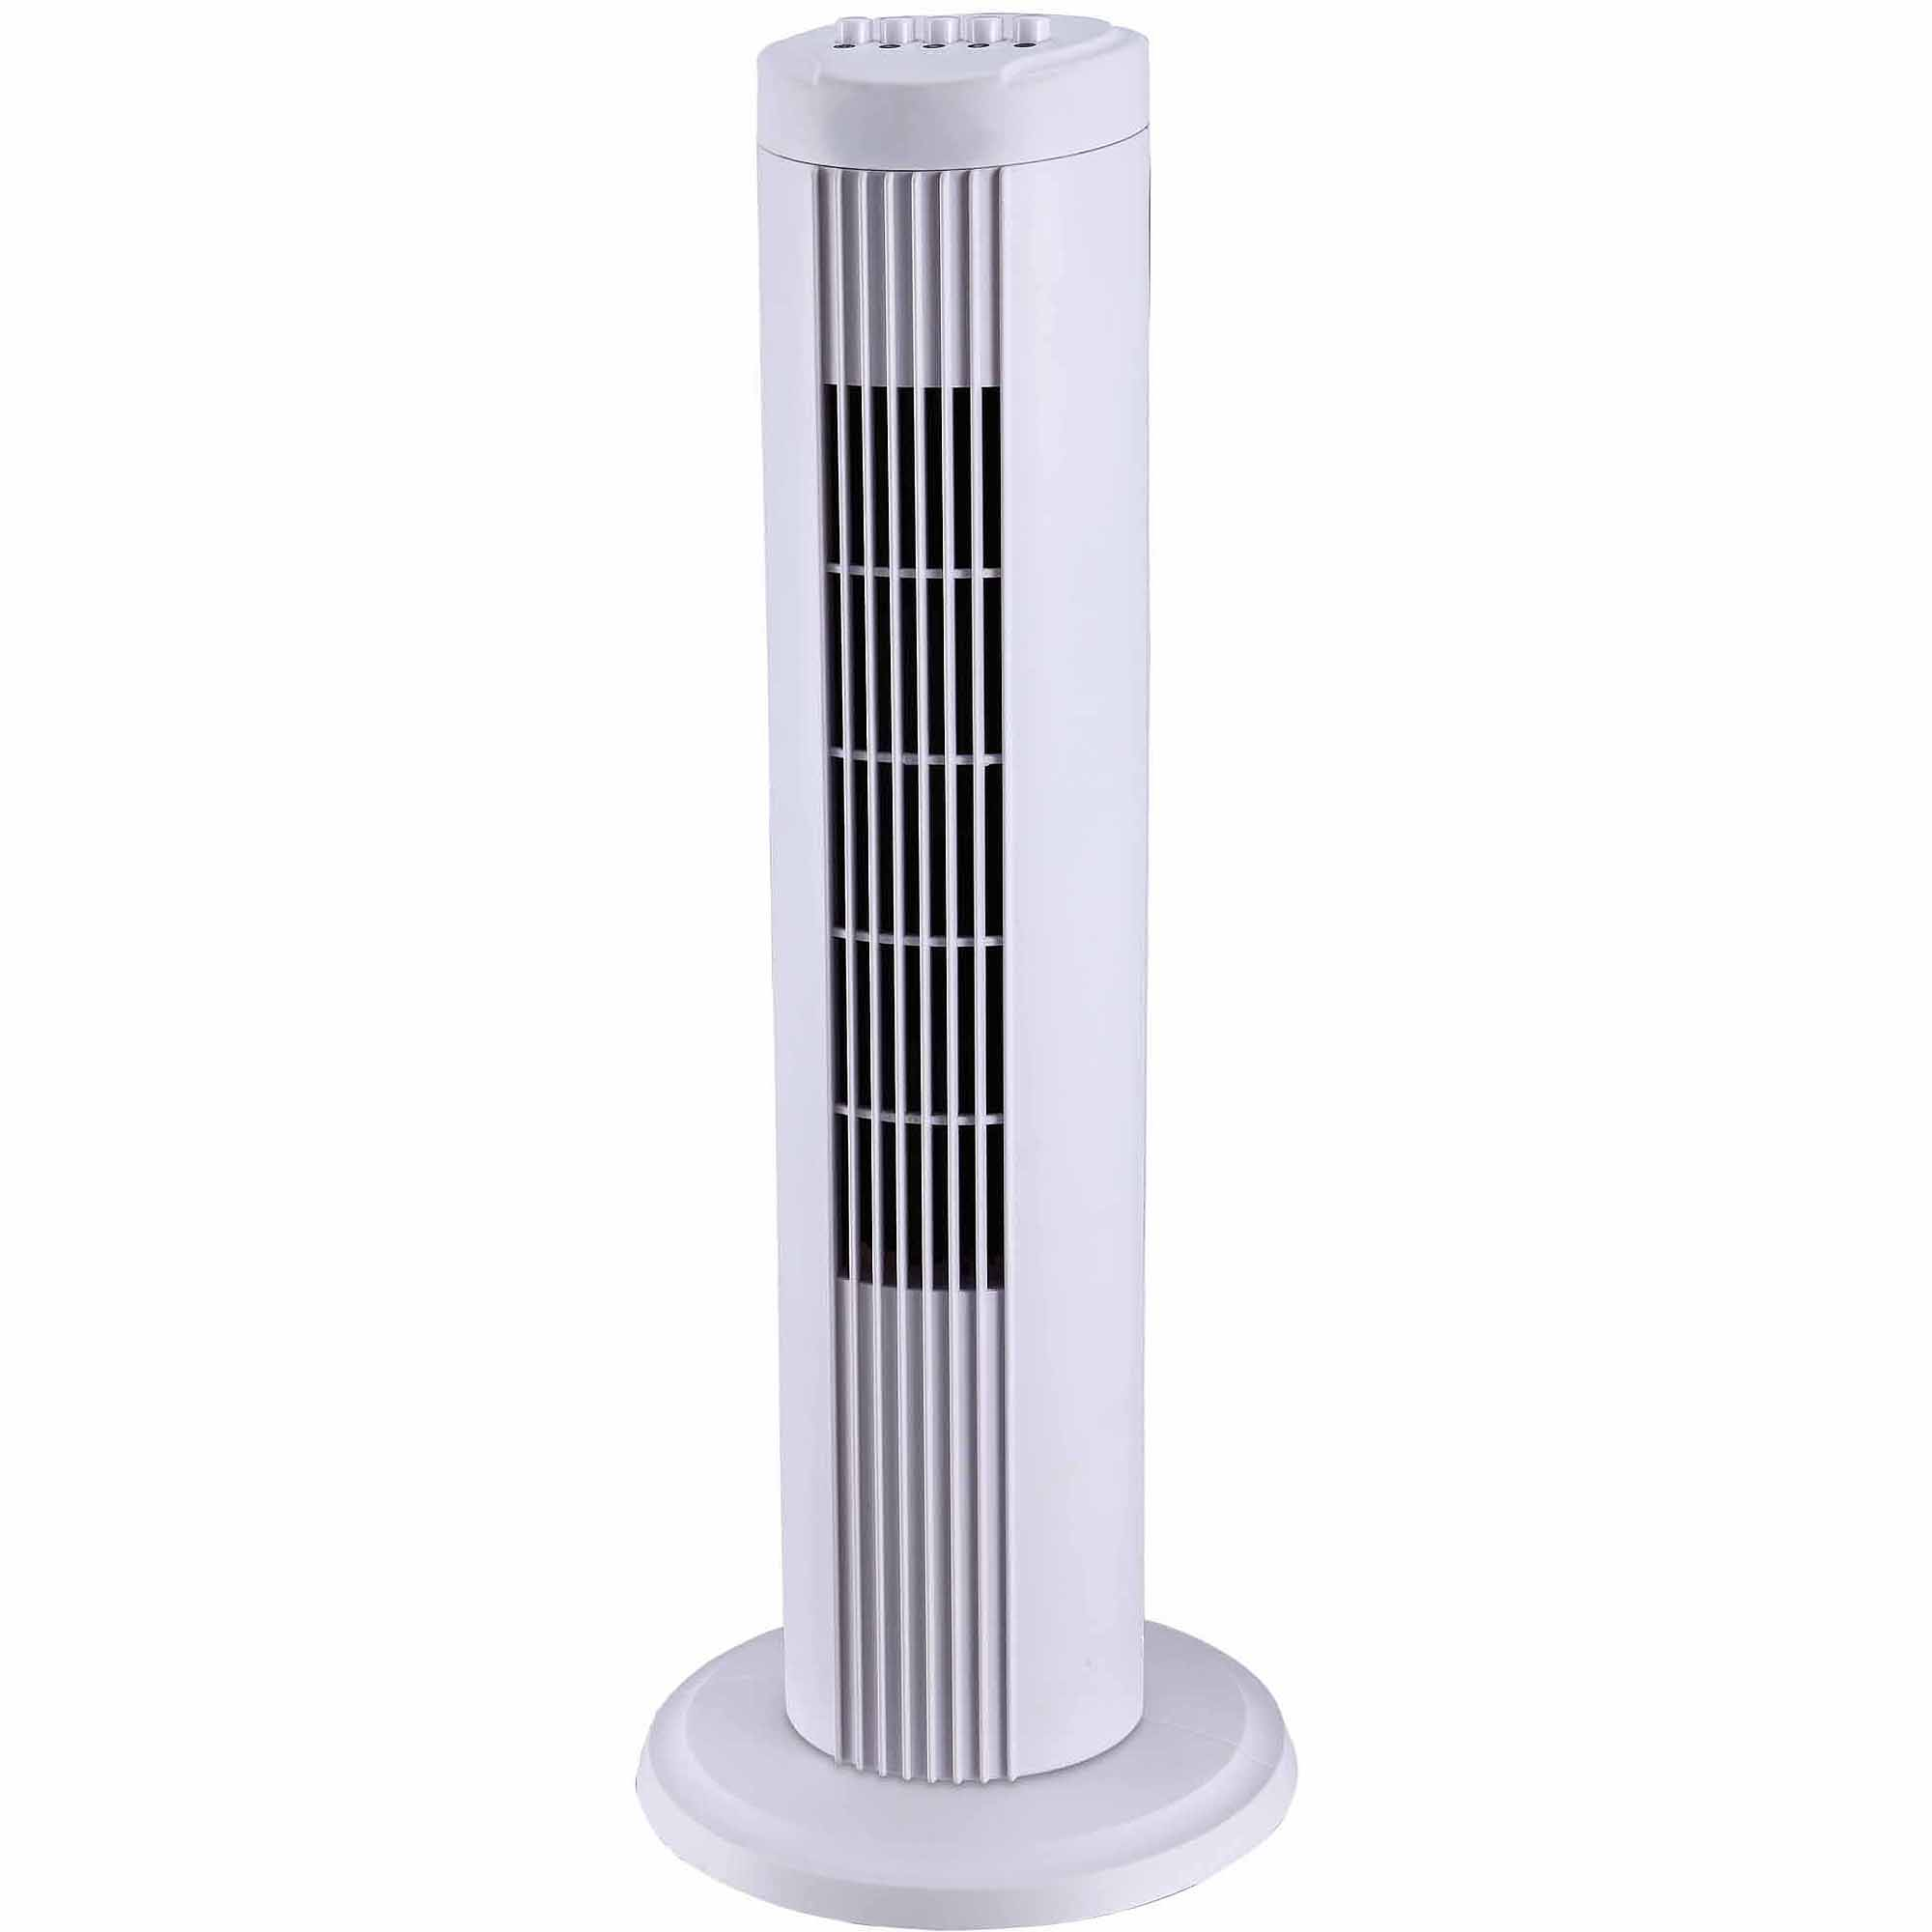 Portable Tower Fan With Remote Cooling Tenerife